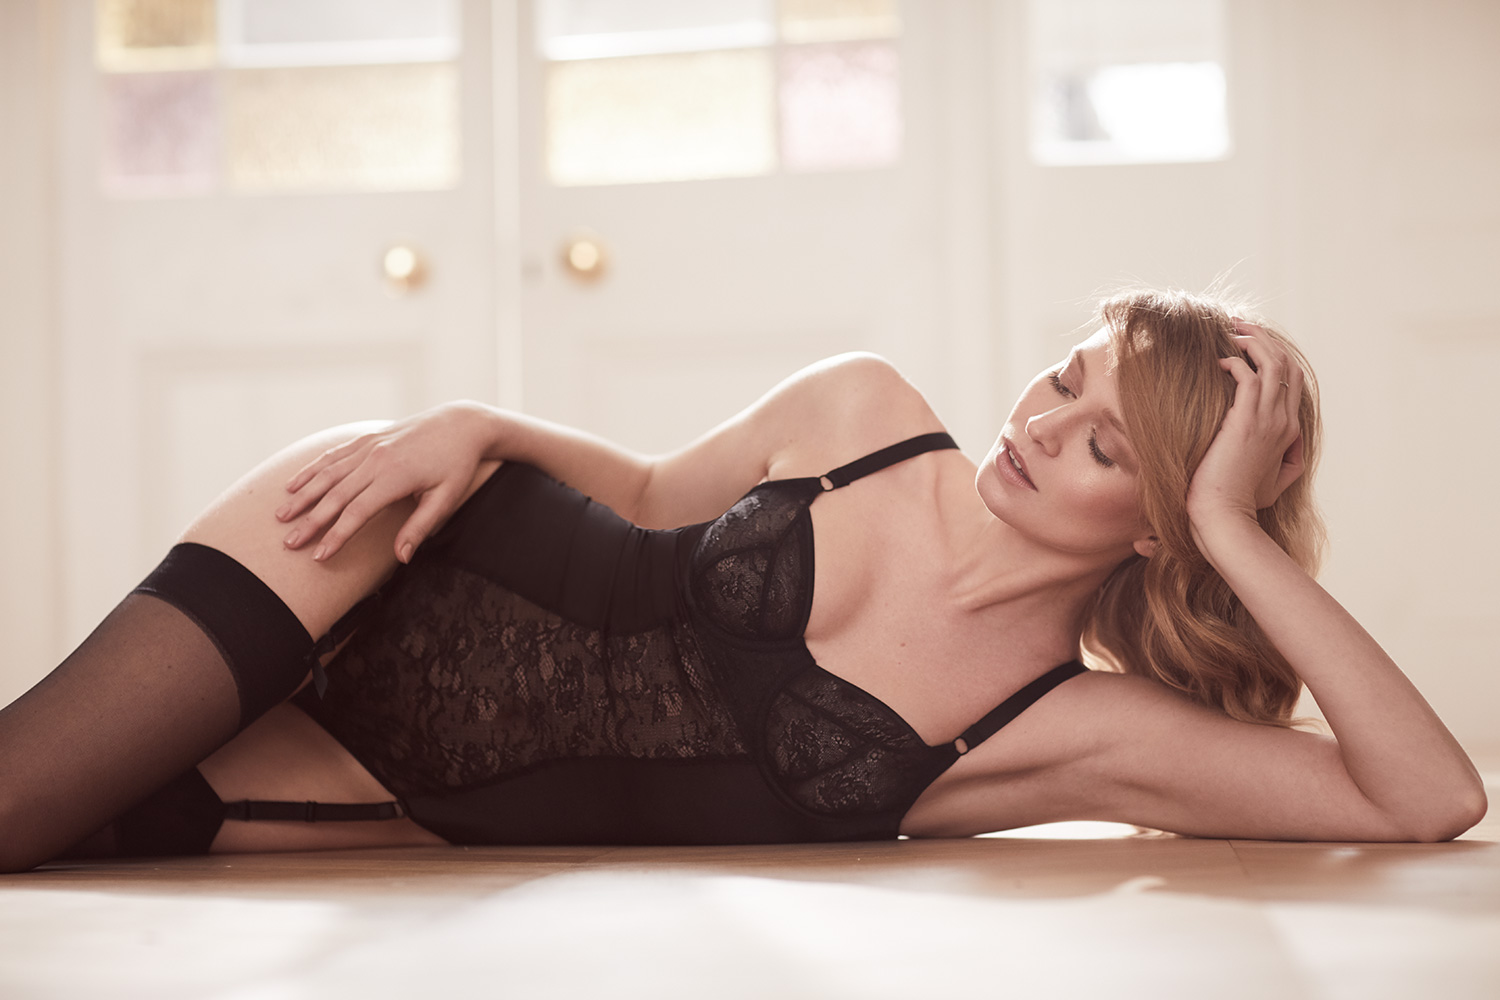 Revealing the AW18 collection at INDX Intimate Apparel